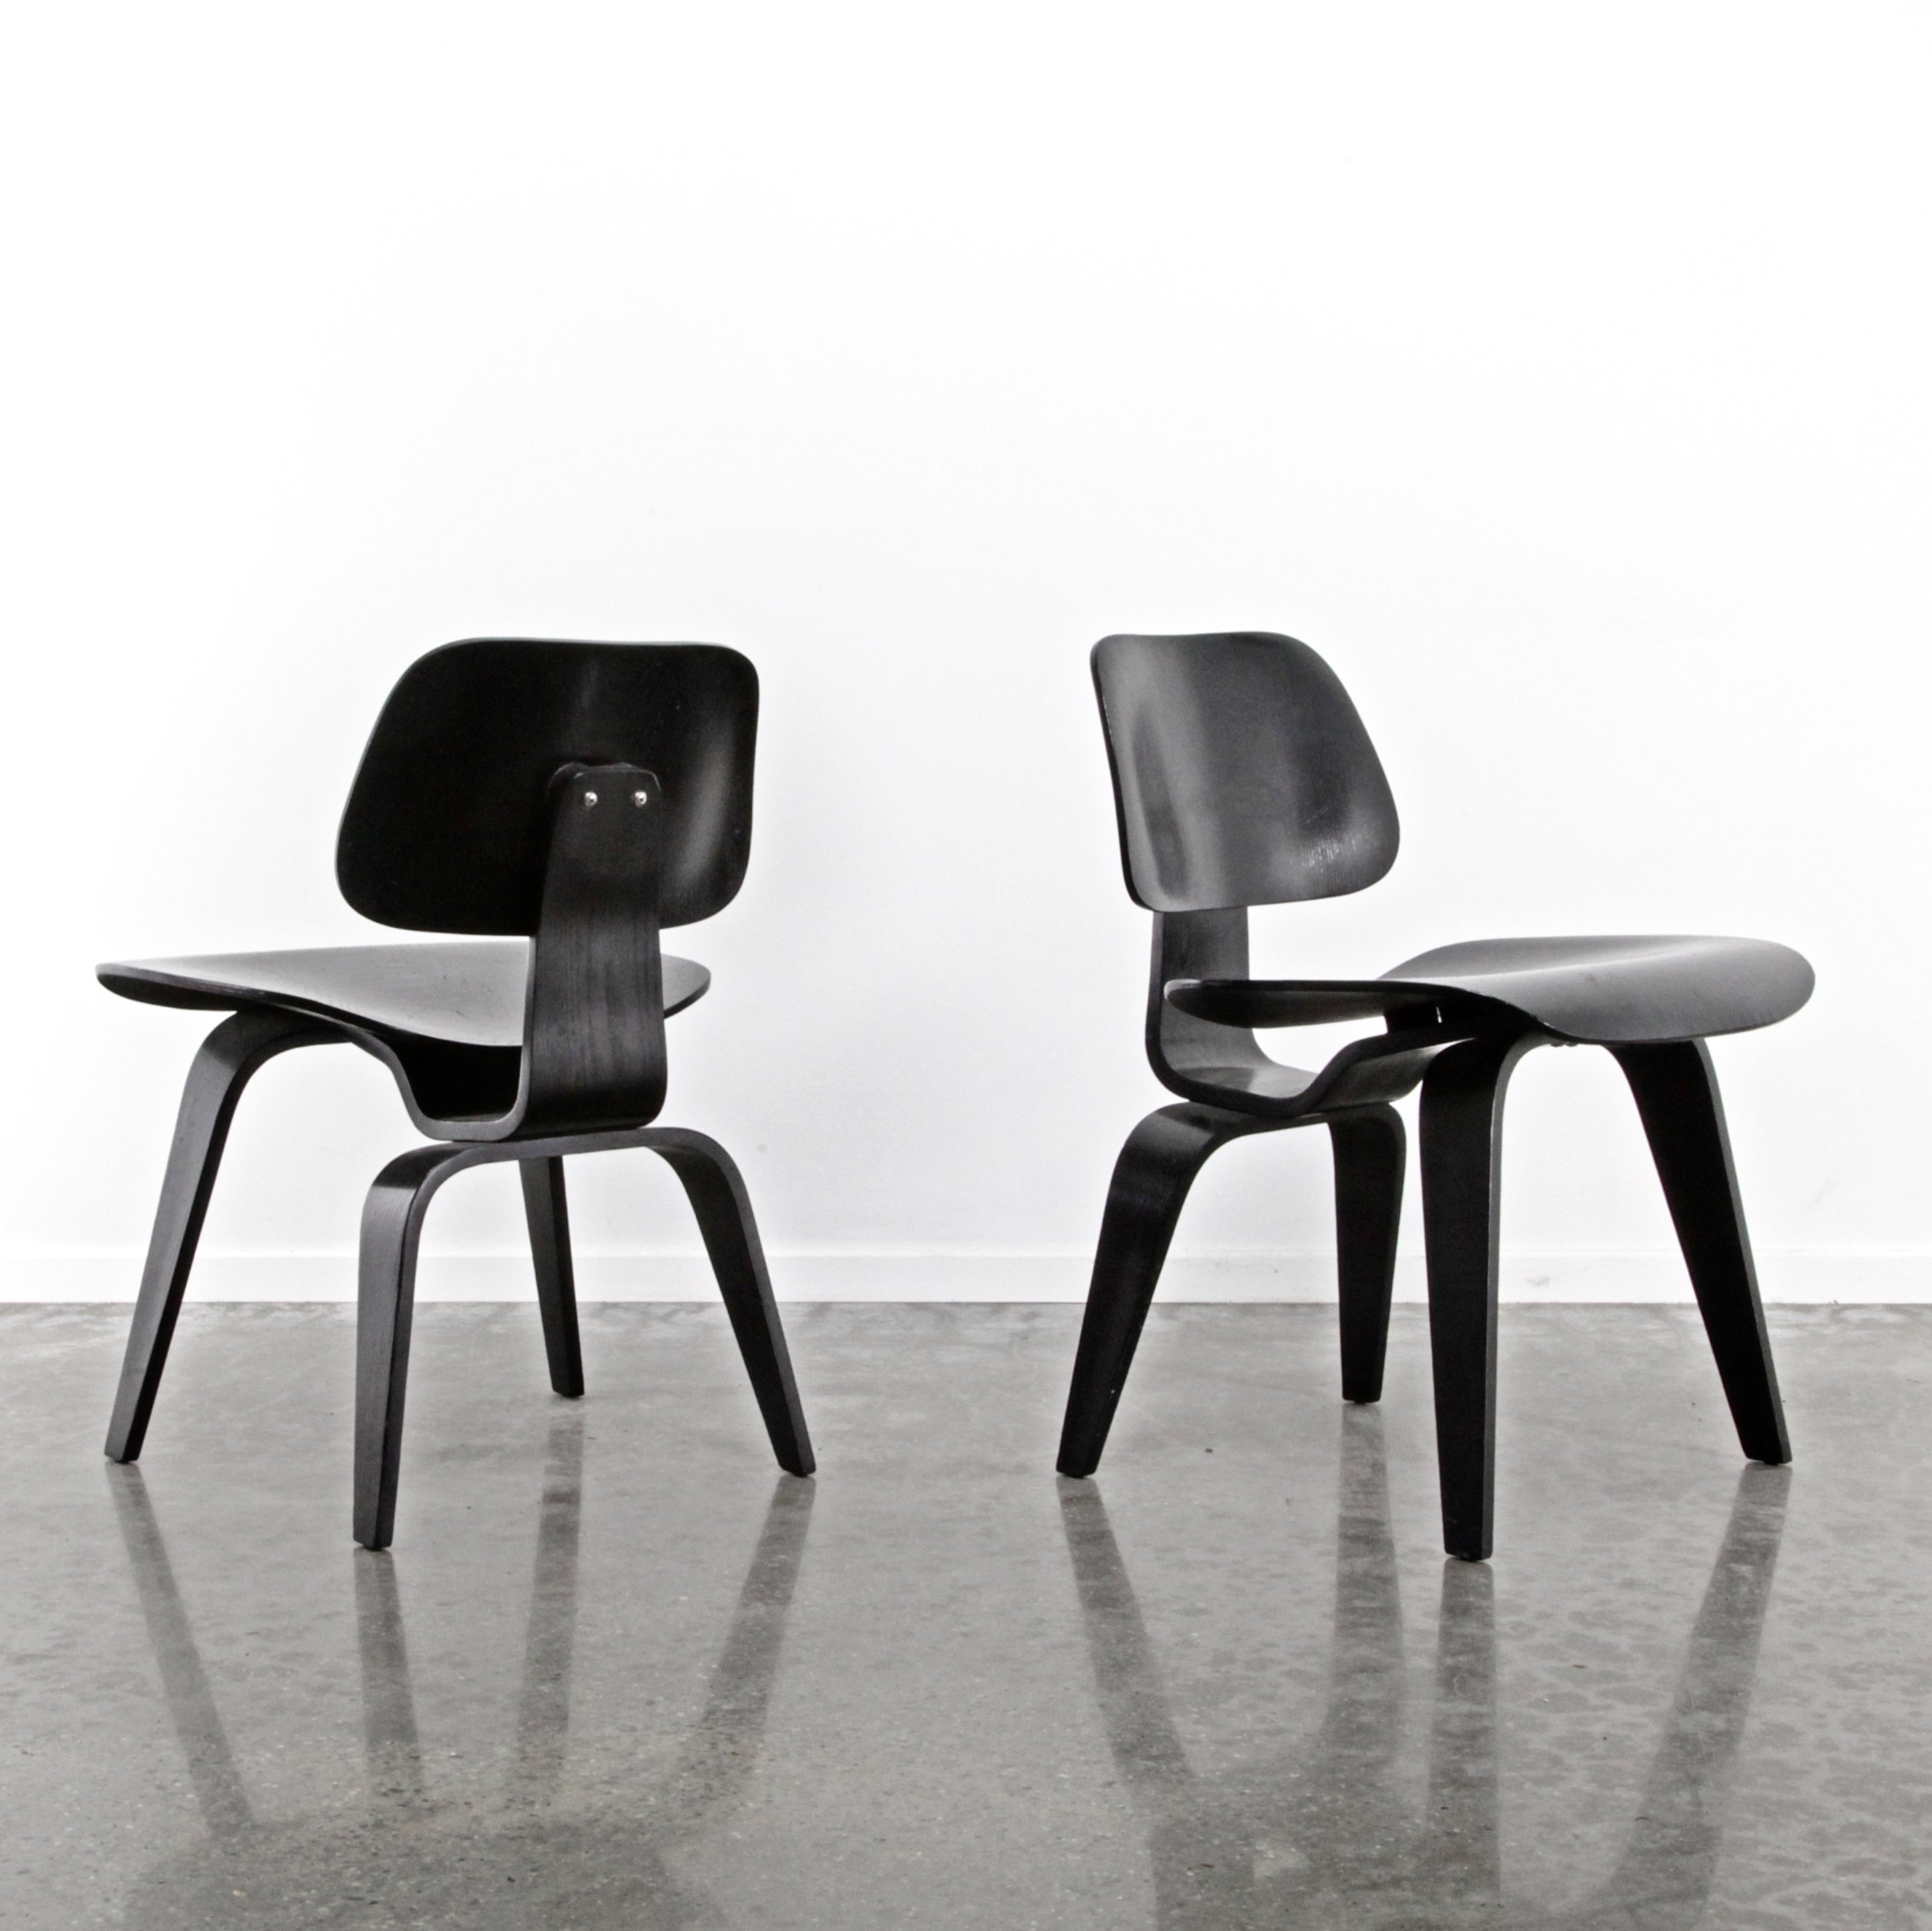 Miraculous Pair Of Dcw Dining Chairs By Charles Ray Eames For Herman Pdpeps Interior Chair Design Pdpepsorg